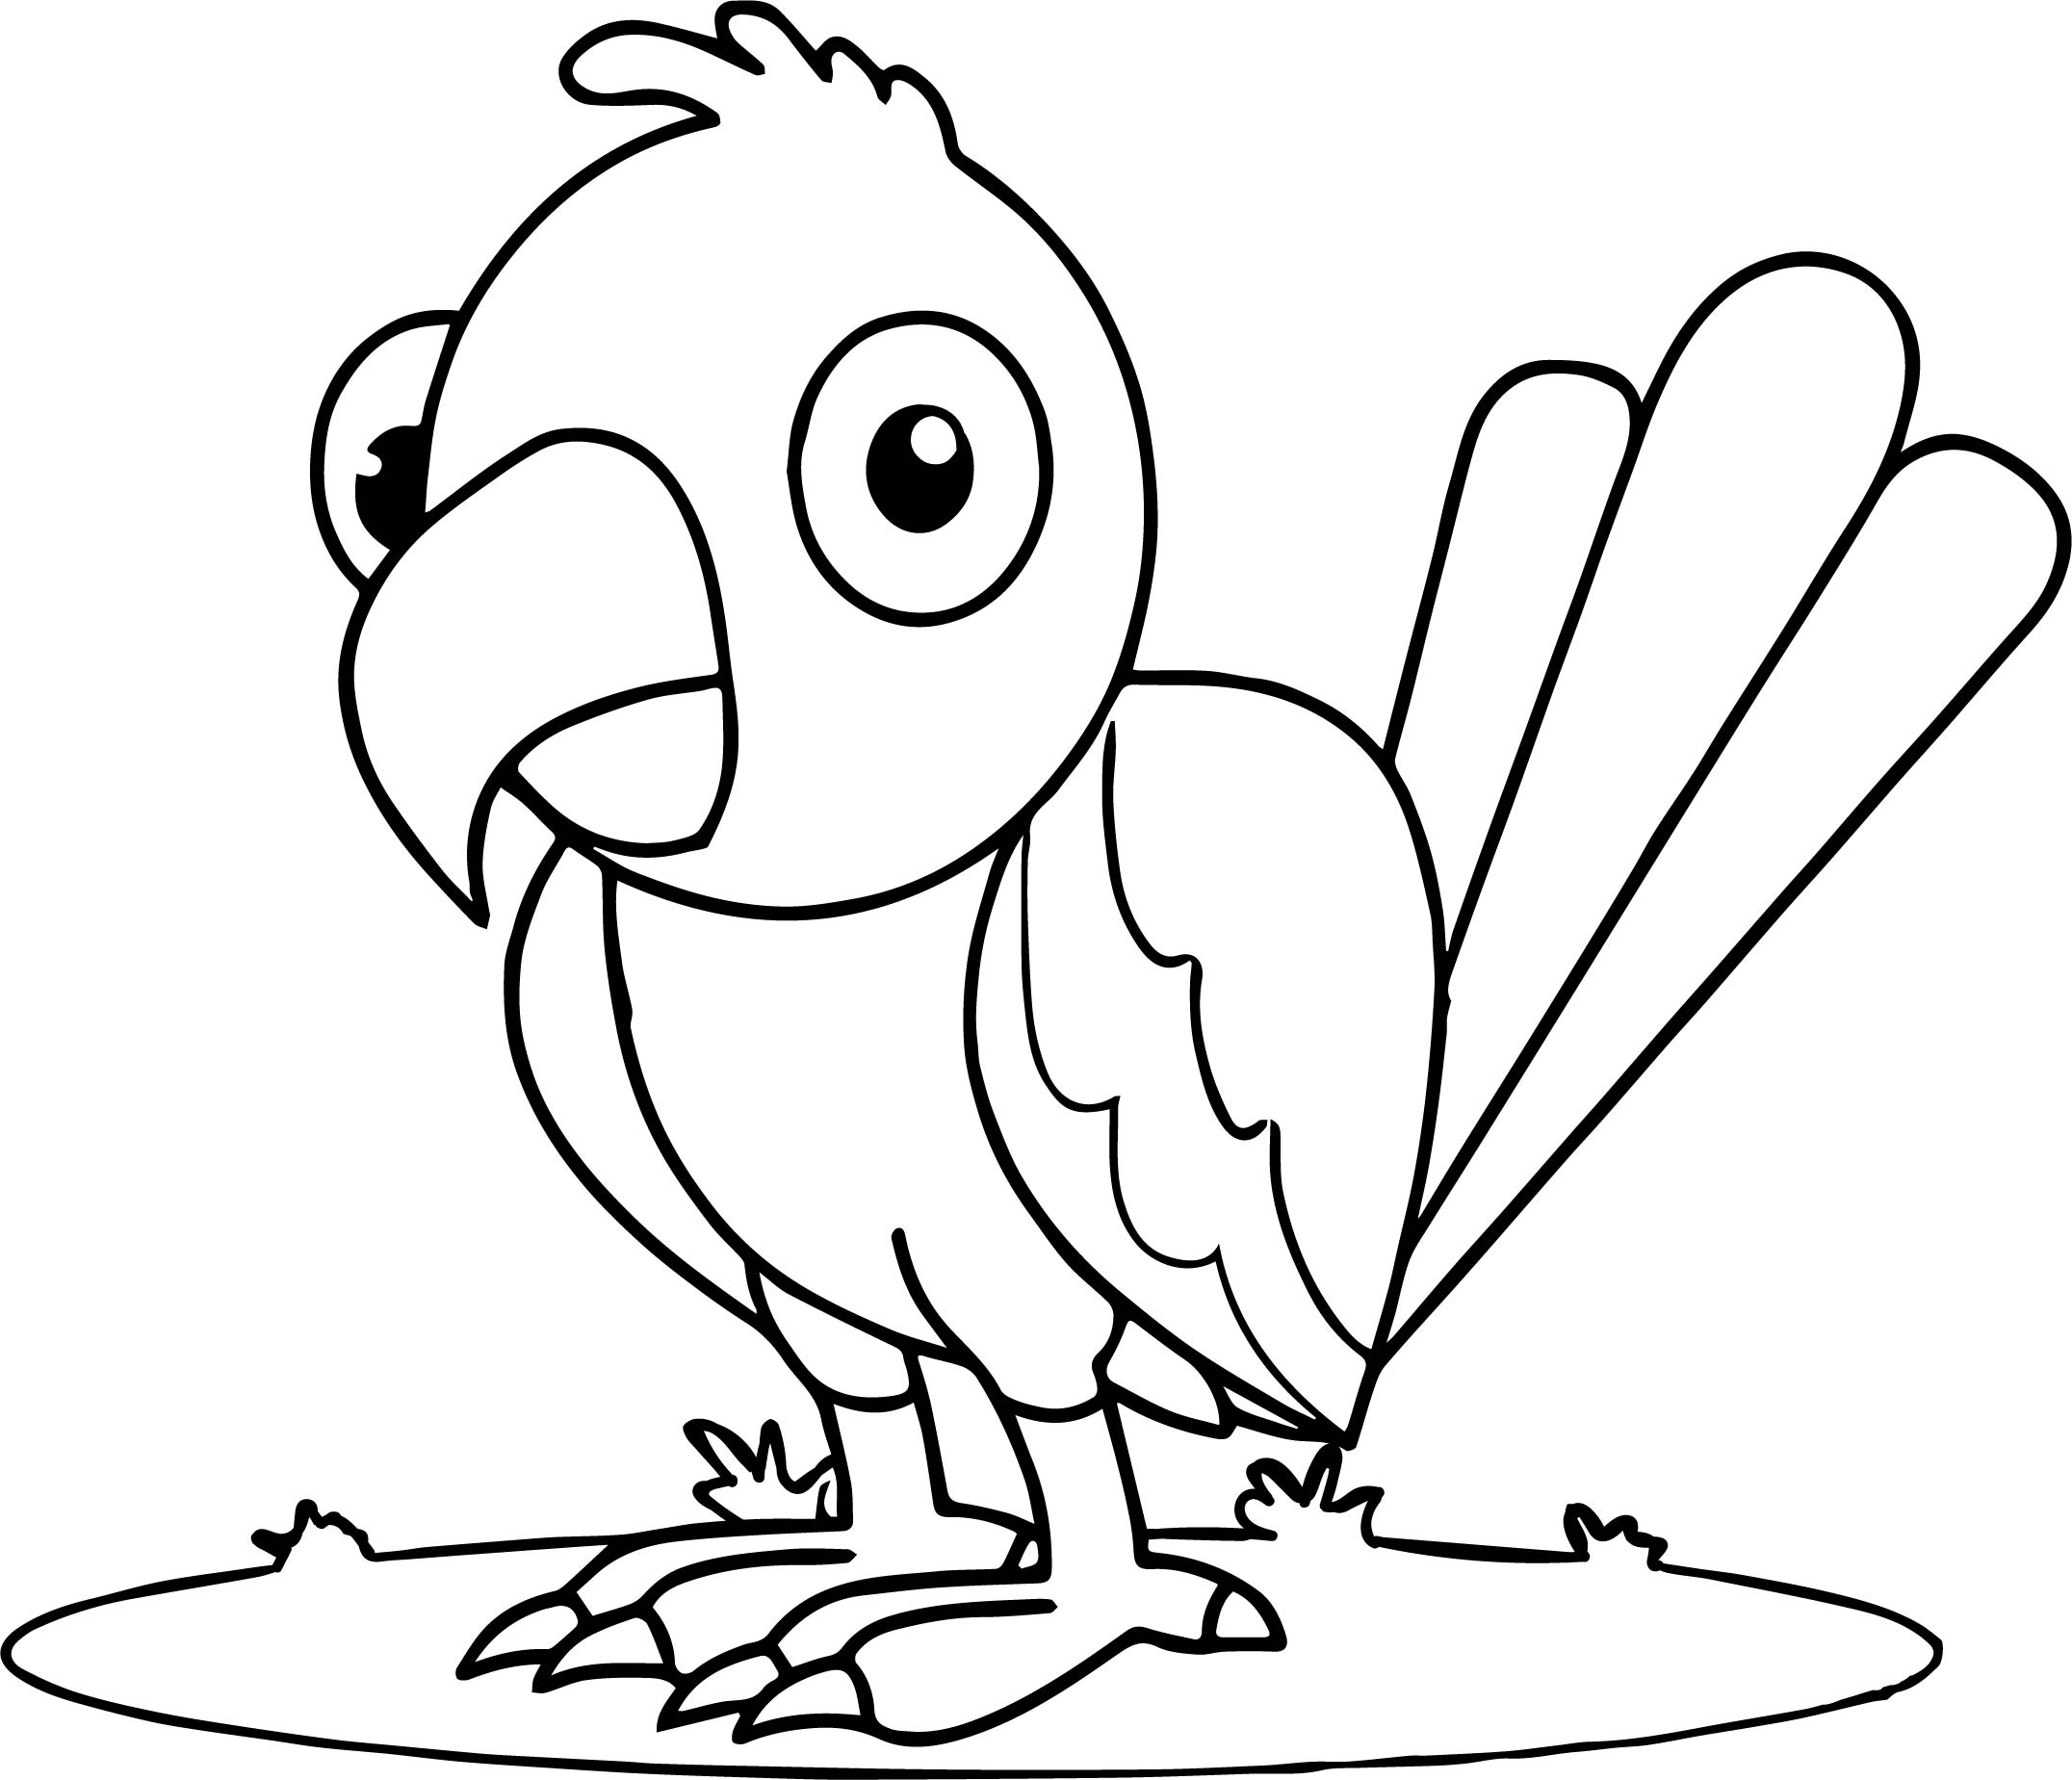 Waiting parrot coloring page for Coloring pages parrot